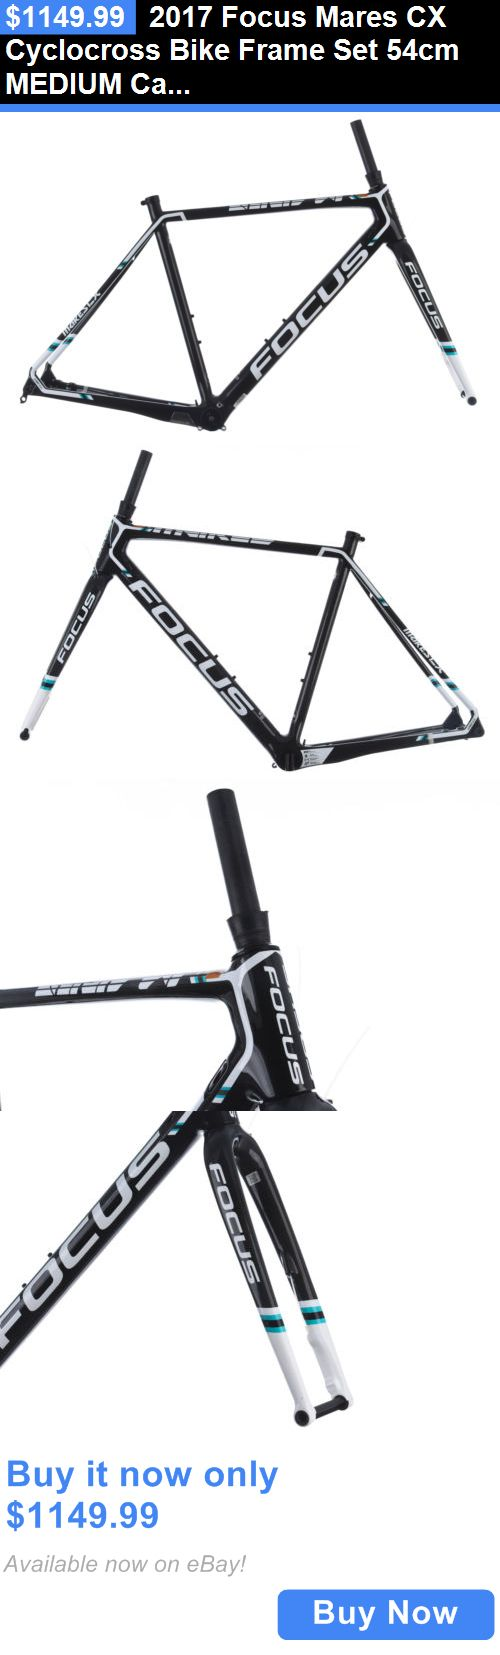 bicycle parts: 2017 Focus Mares Cx Cyclocross Bike Frame Set 54Cm Medium Carbon Disc R.A.T. BUY IT NOW ONLY: $1149.99